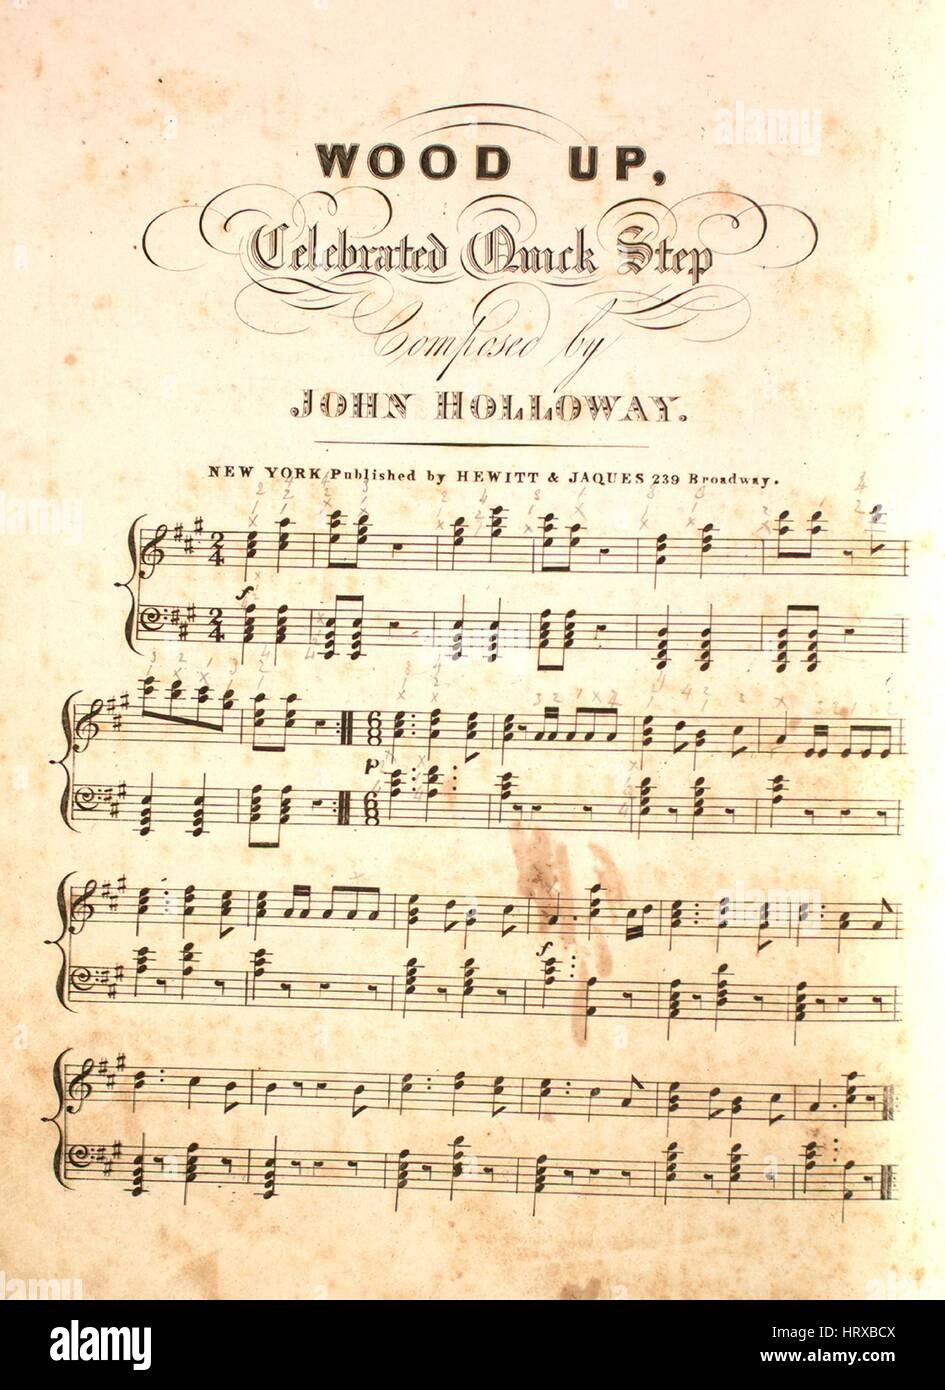 Sheet music cover image of the song 'Wood Up Celebrated Quick Step